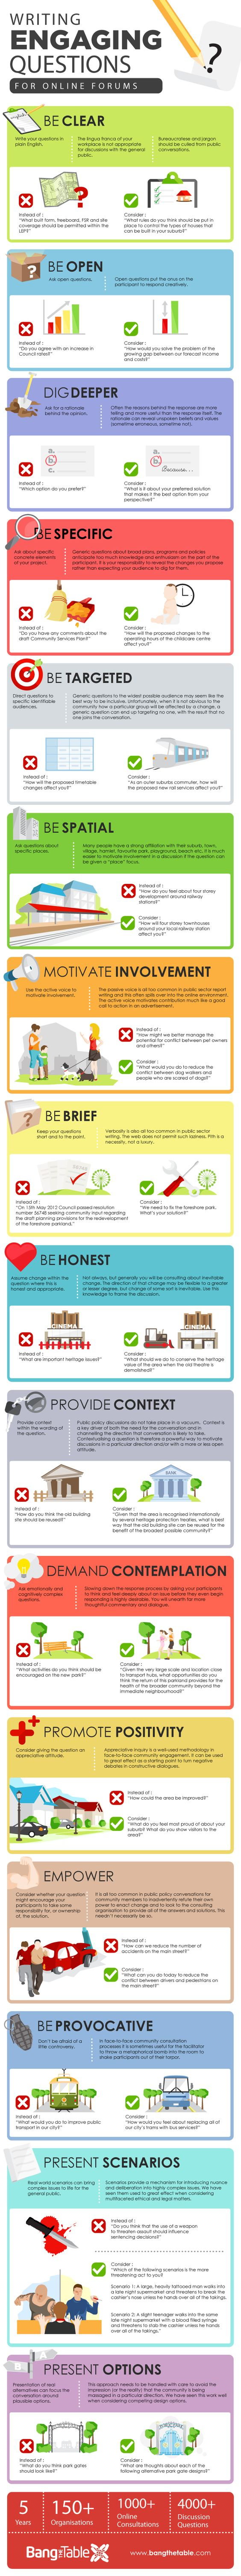 How To Compose Engaging Questions for Online Forums Infographic - http://elearninginfographics.com/how-to-compose-engaging-questions-for-online-forums-infographic/